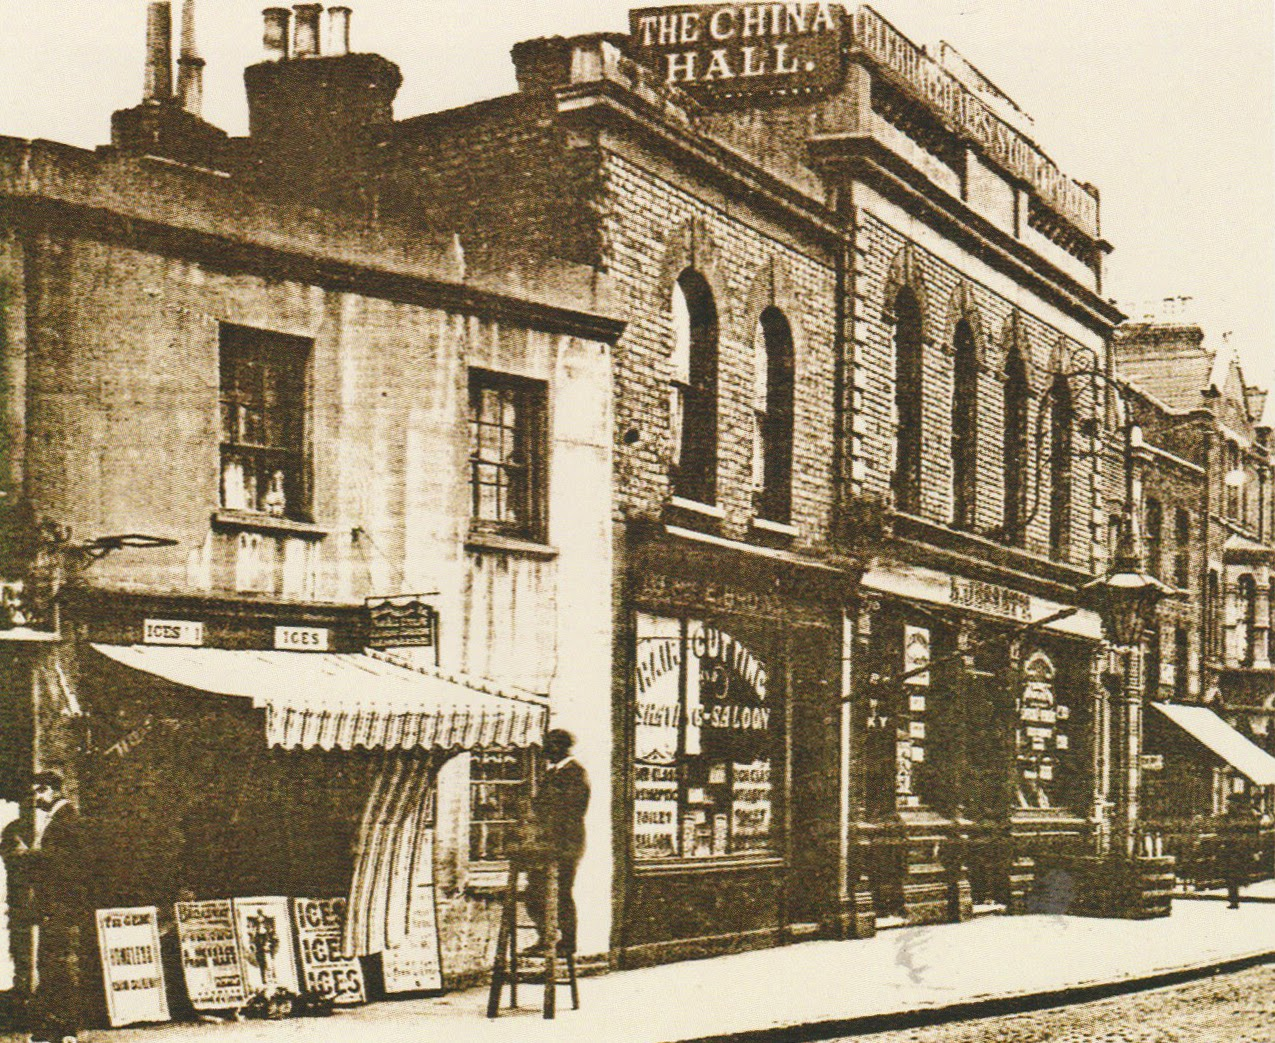 A Rotherhithe Blog: The China Hall, Rotherhithe